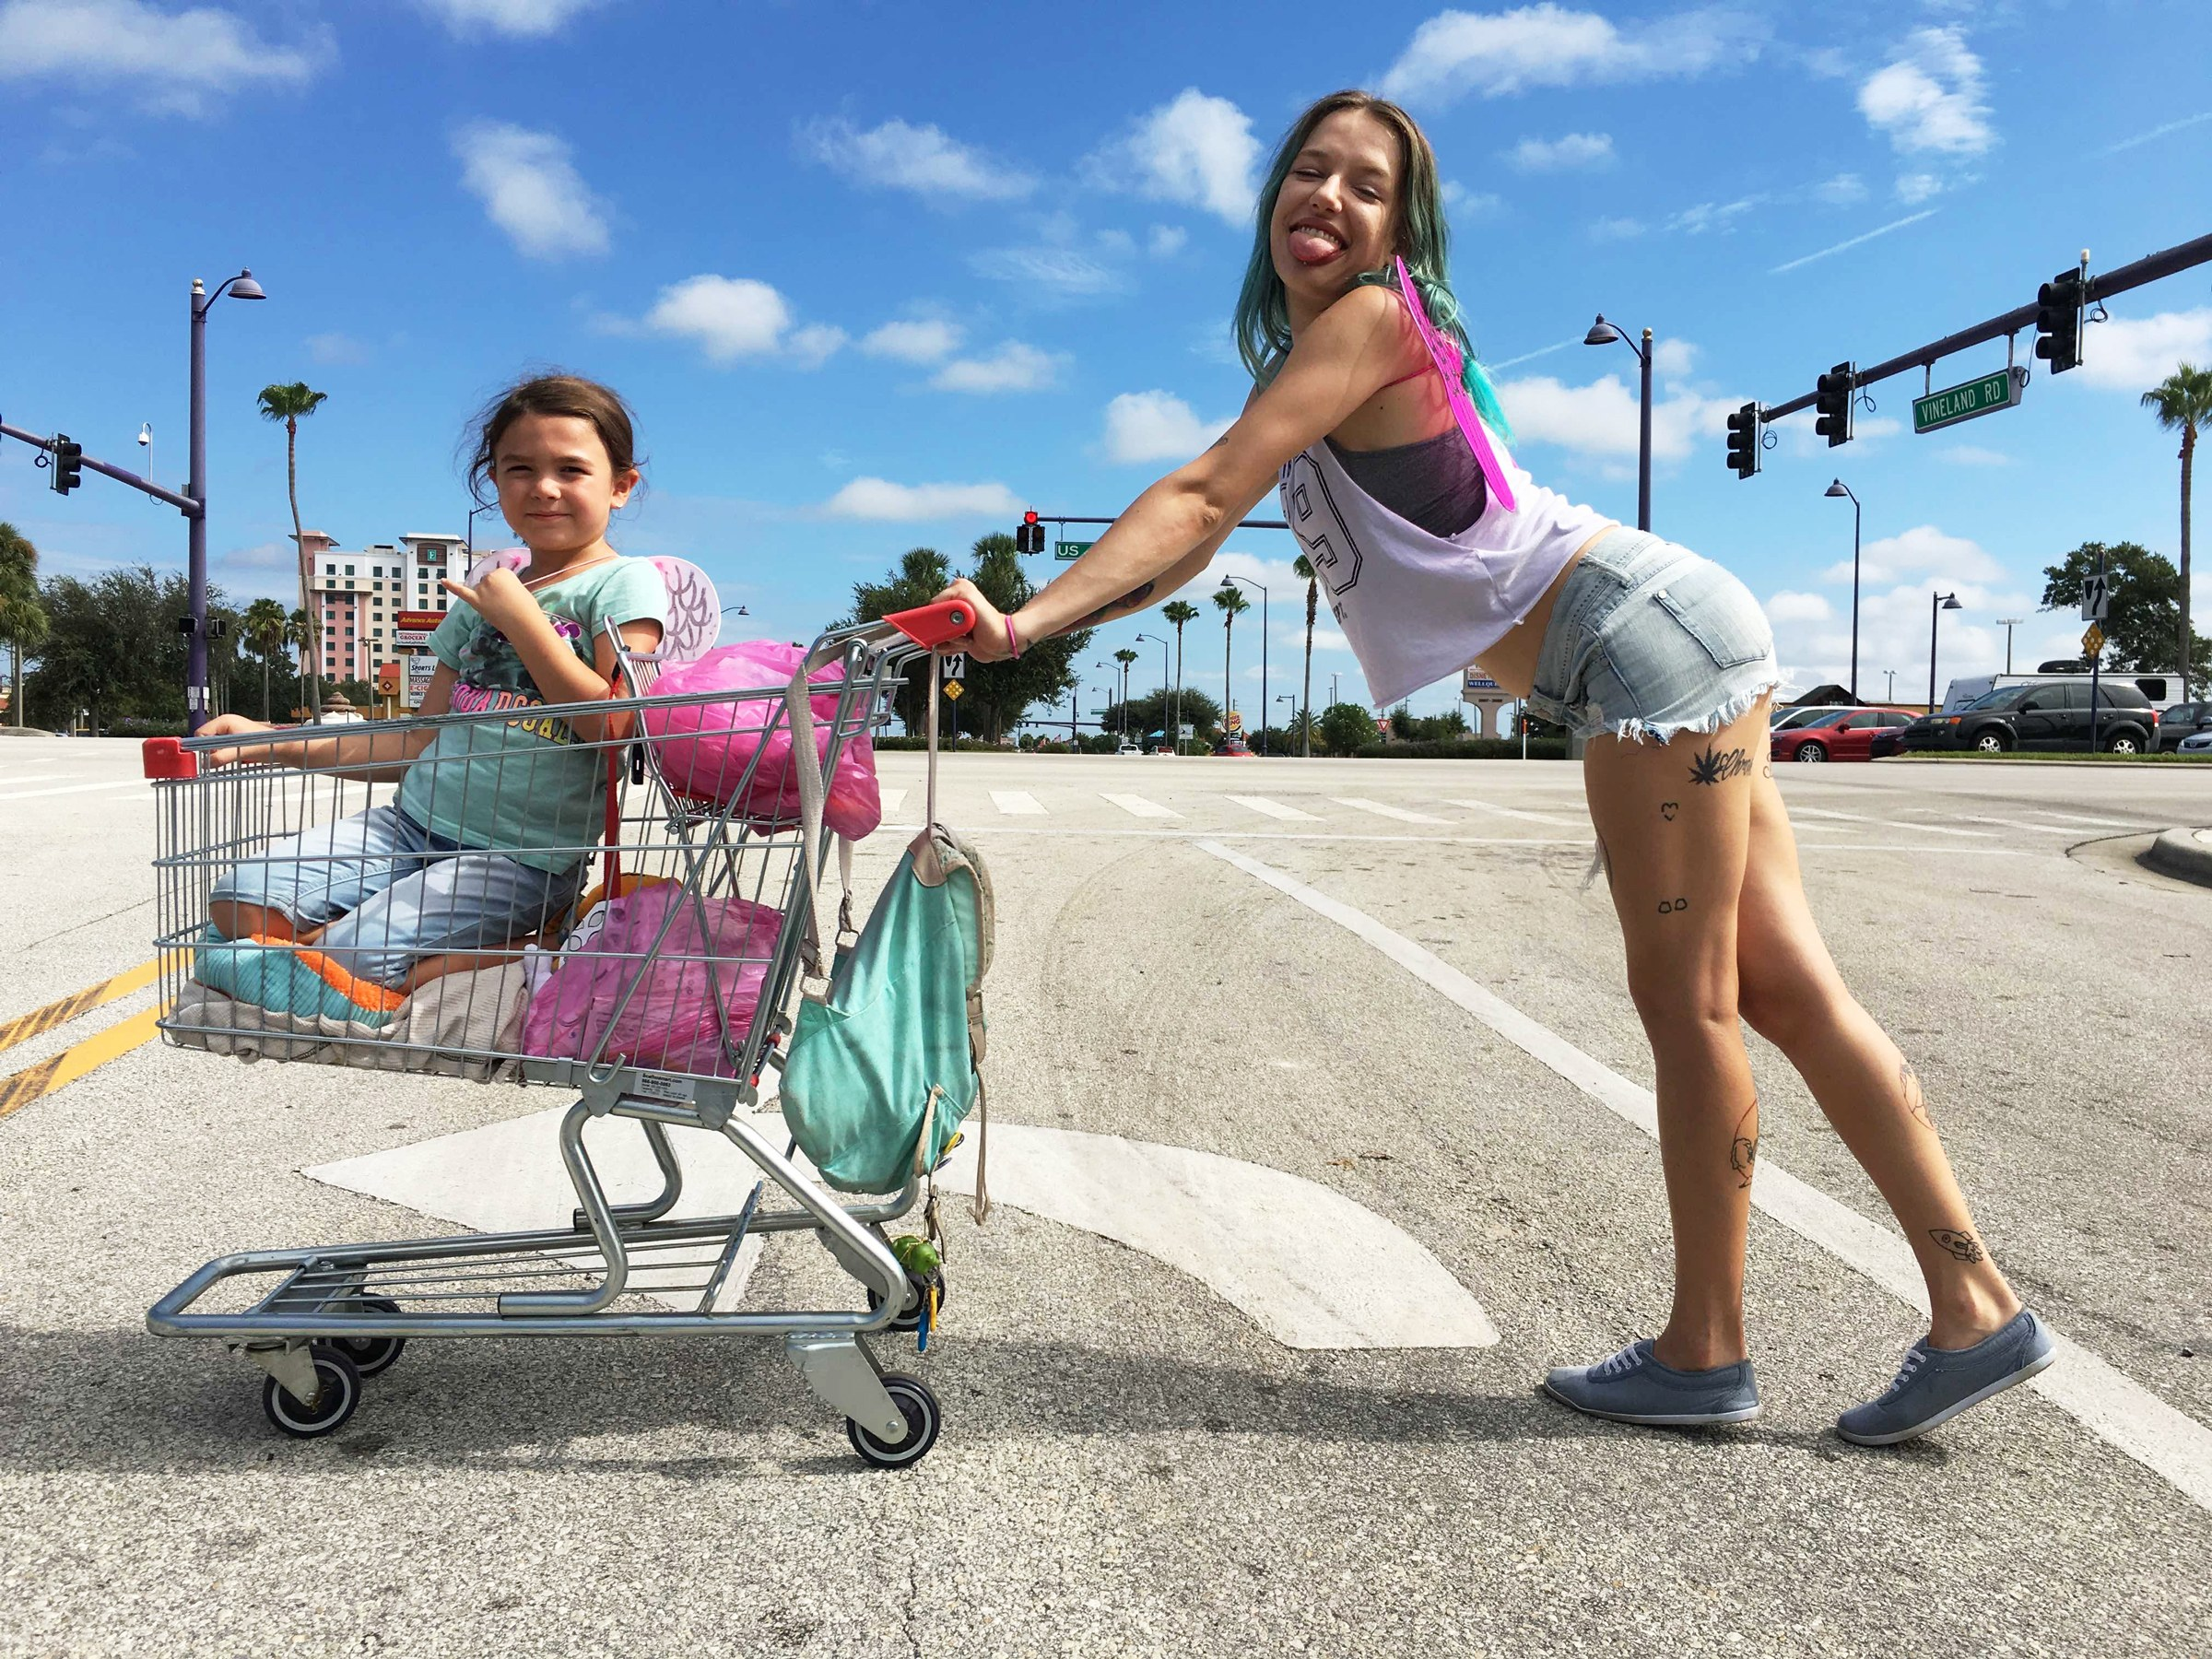 "10. BROOKLYNN PRINCE, BRIA VINAITE | as Moonee and Halley | THE FLORIDA PROJECT    (Regarding 7-year-old star Brooklynn Prince):  ""There were a few scenes...that were more improv. But for the most part, I have to say, we stuck pretty close to the script, we had limited hours, and Brooklynn is amazing at just learning lines. So she would come to set knowing the scenes and then sometimes if I had time I would let them deviate or I would encourage some improvisation. There were sometimes that were almost fully improv, but obviously she knew what she had to say to sell the perfume. That was literally like we were putting them in a candid camera situation. So I couldn't even—I couldn't tell her what to expect because I didn't know what would happen...""   (Regarding the debuting Bria Vinaite and discovering her on Instagram):  ""At the time I was thinking about the character of Halley a lot, and we haven't cast for her yet. So we were out to some A-listers for that role...but then, I kept going back to Bria's Instagram saying 'yeah, well they're not going to be as good as her so….' But we could never cast her because my financiers won't allow me to but then somebody finally said, 'why don't we just audition her? You proved in  Tangerine  that unconventional casting can work.' And I think that's what allowed me to do it. So we flew her to Orlando. She connected with Brooklynn and it seemed to me like the energy was there. I actually believed them as mother and daughter.  [Bria] was really enthusiastic about doing it, but at the same time, she was intimidated. She said, 'Help me' and we said 'we're gonna give you a crash course in acting for the next month.' So a month leading up to the shoot, she lived down [in Florida] and she was working with my acting coach who worked with the kids and it was just all intensive. It was freakin' awesome, was what it was. She really really got to that place we needed her to get to."" -  Sean Baker, director of  The Florida Project , Collider, October 13, 2017"